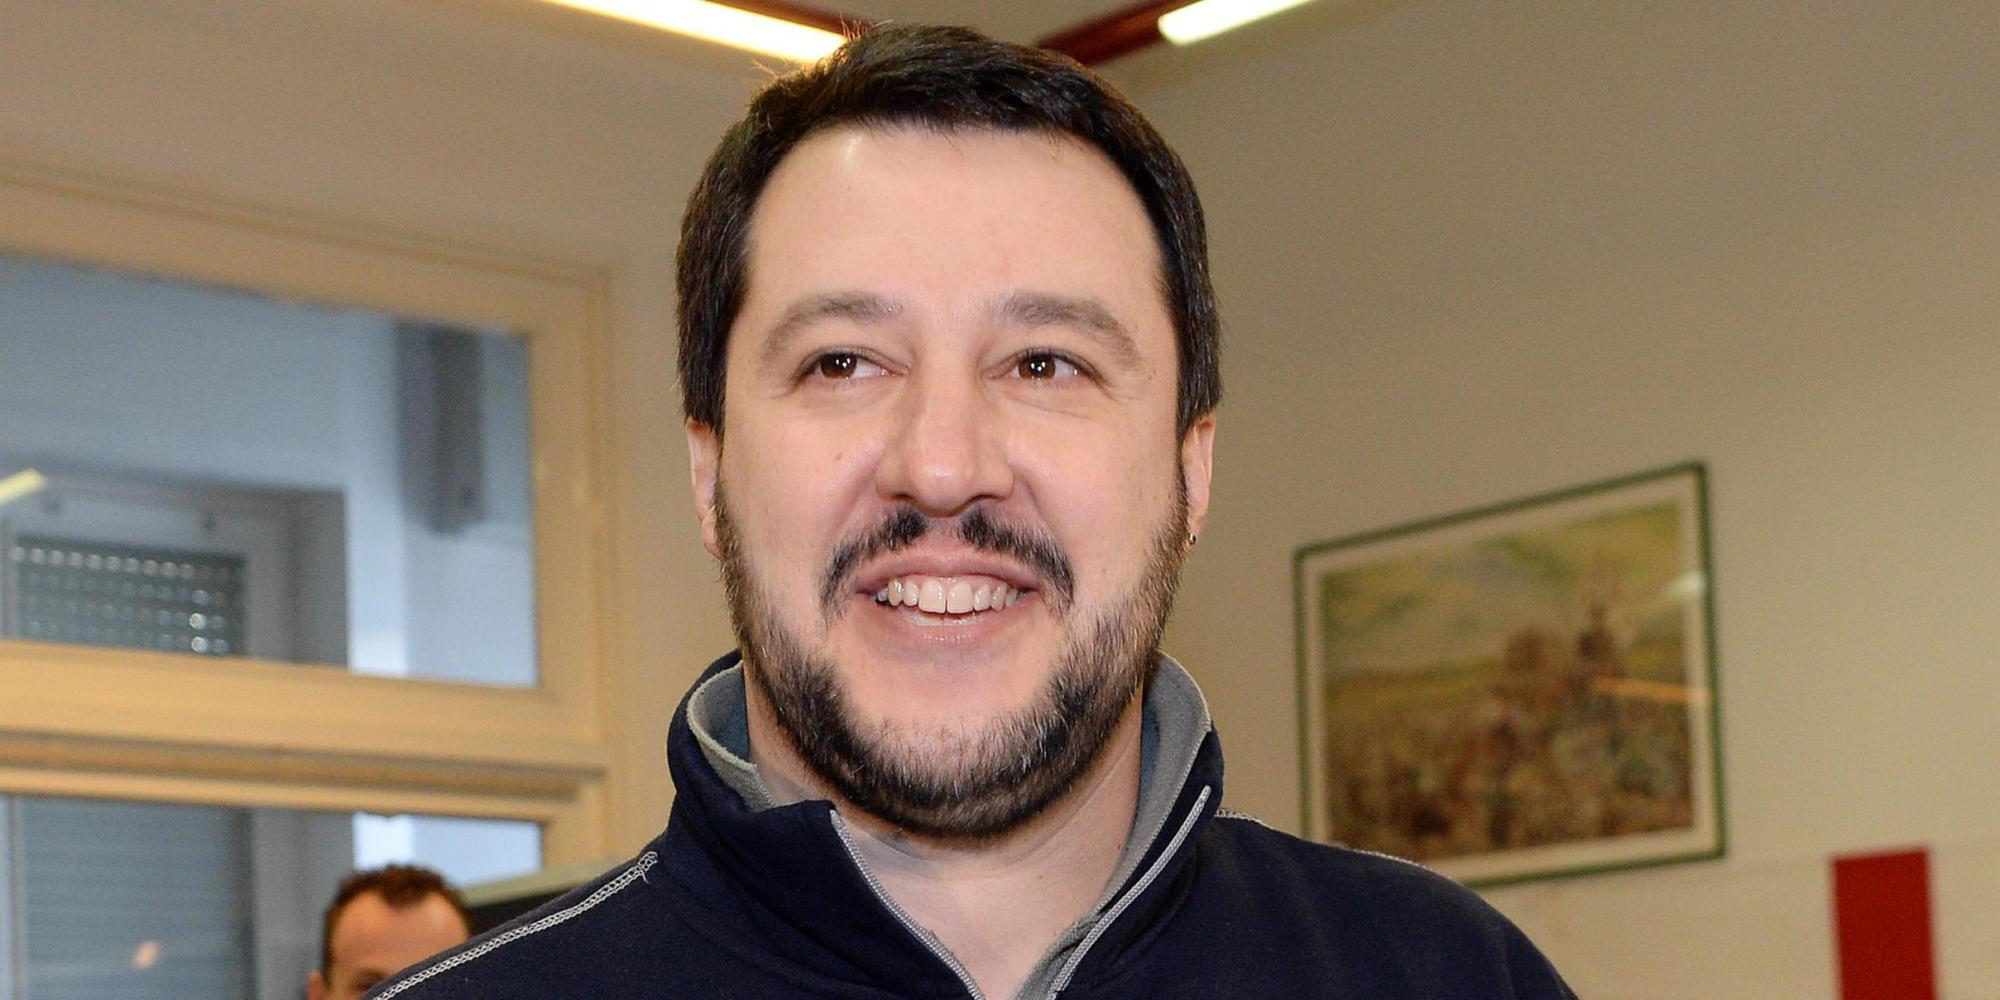 salvini - photo #19